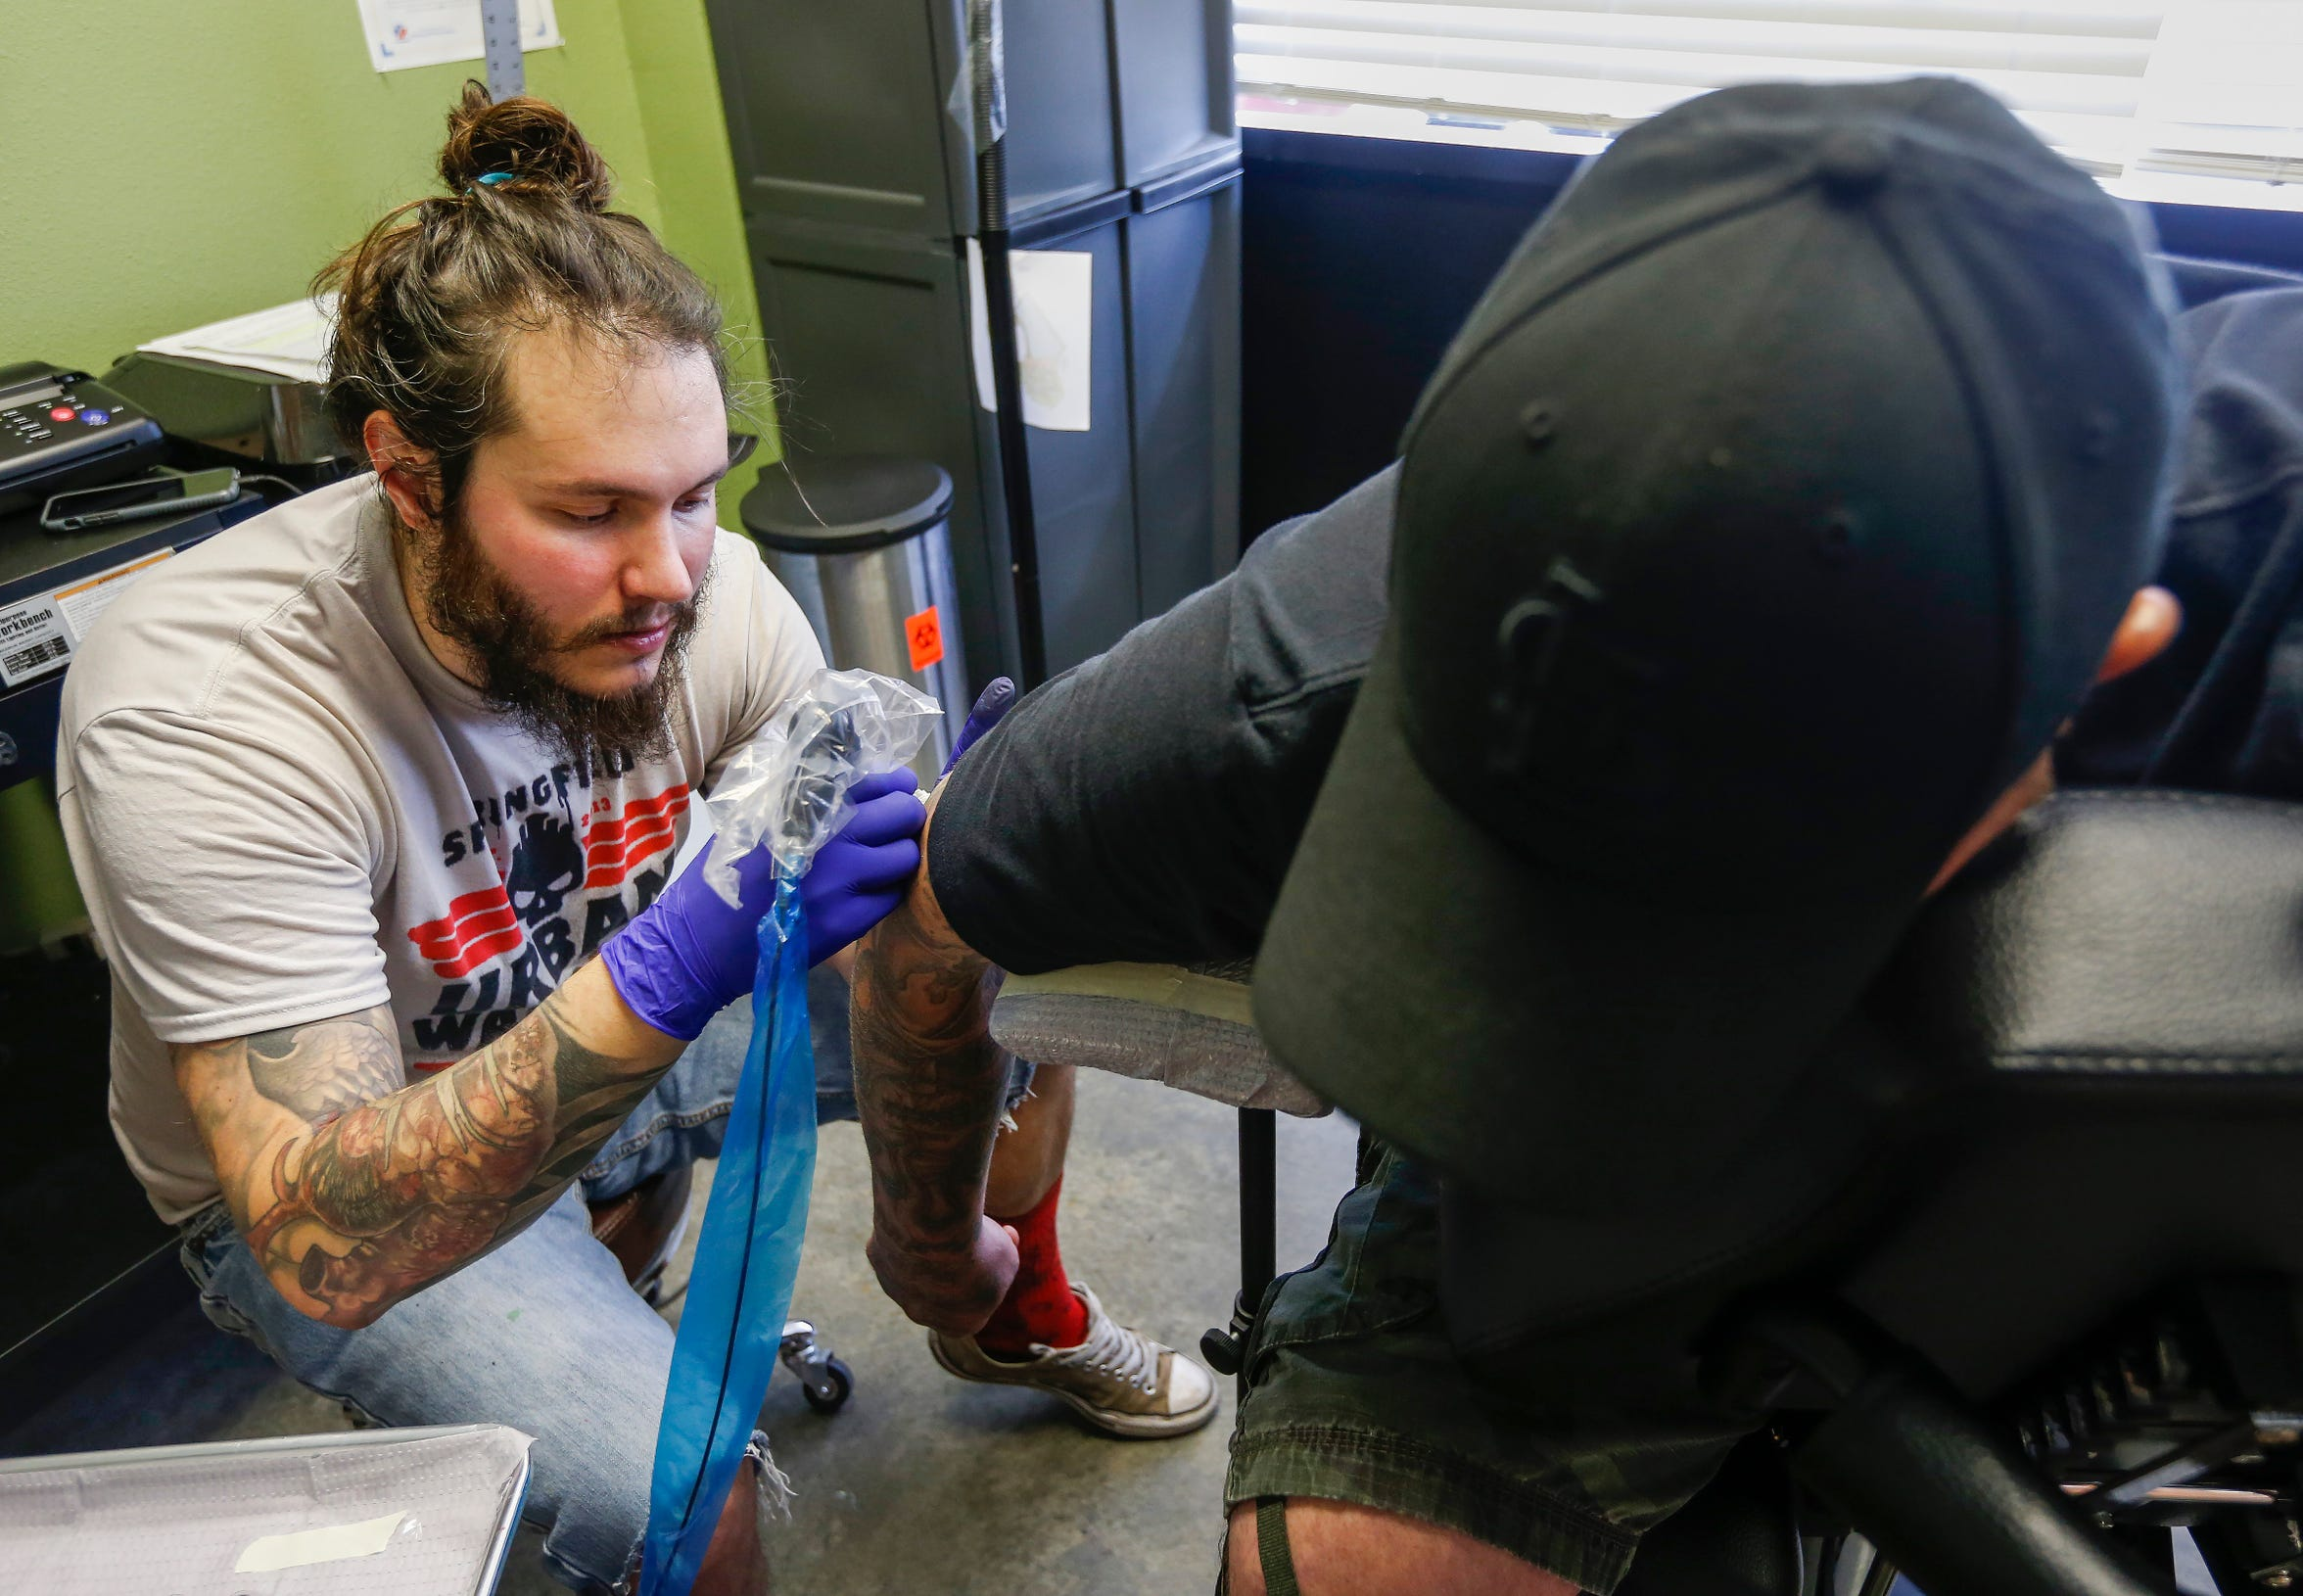 Justin Fleetwood, at tattoo artist at Queen City Tattoo Company, begins to cover up a Nazi SS bolt tattoo on the elbow of a man who wished not to be identified on Tuesday, Aug. 21, 2018. Fleetwood is offering to cover up people's hate-tattoos at no cost.